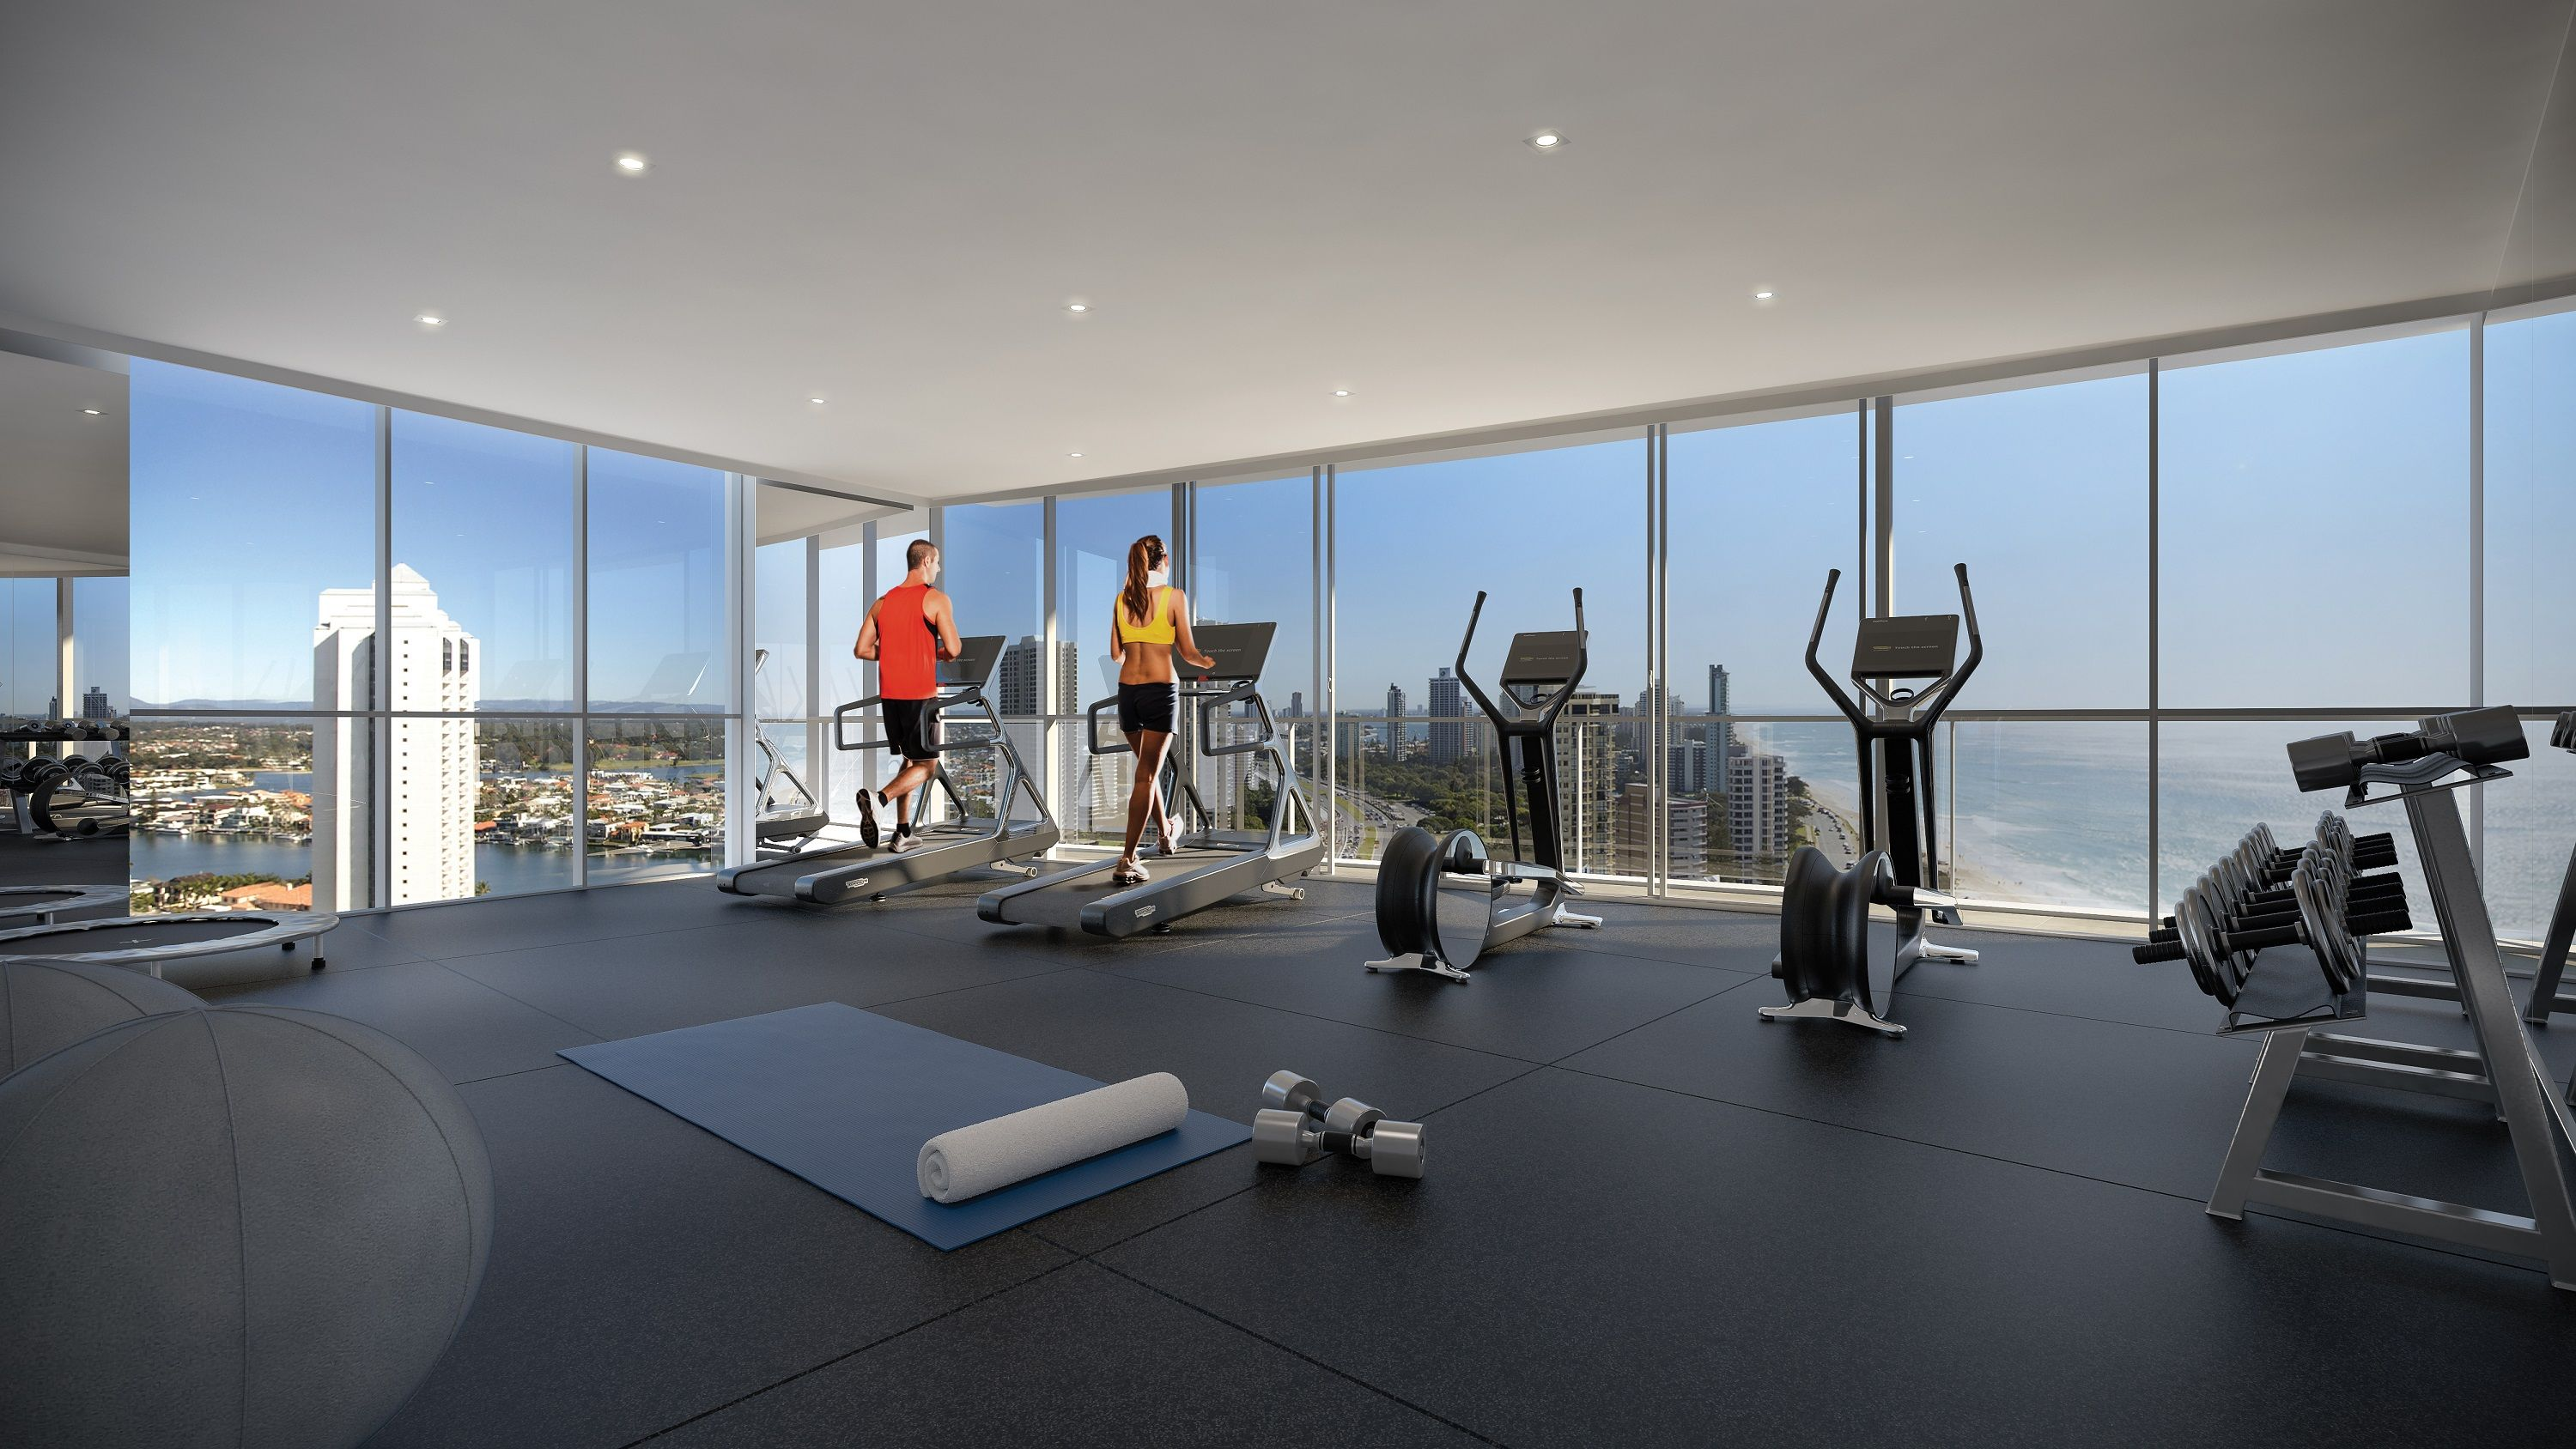 Gym On A Higher Level With Stunning View